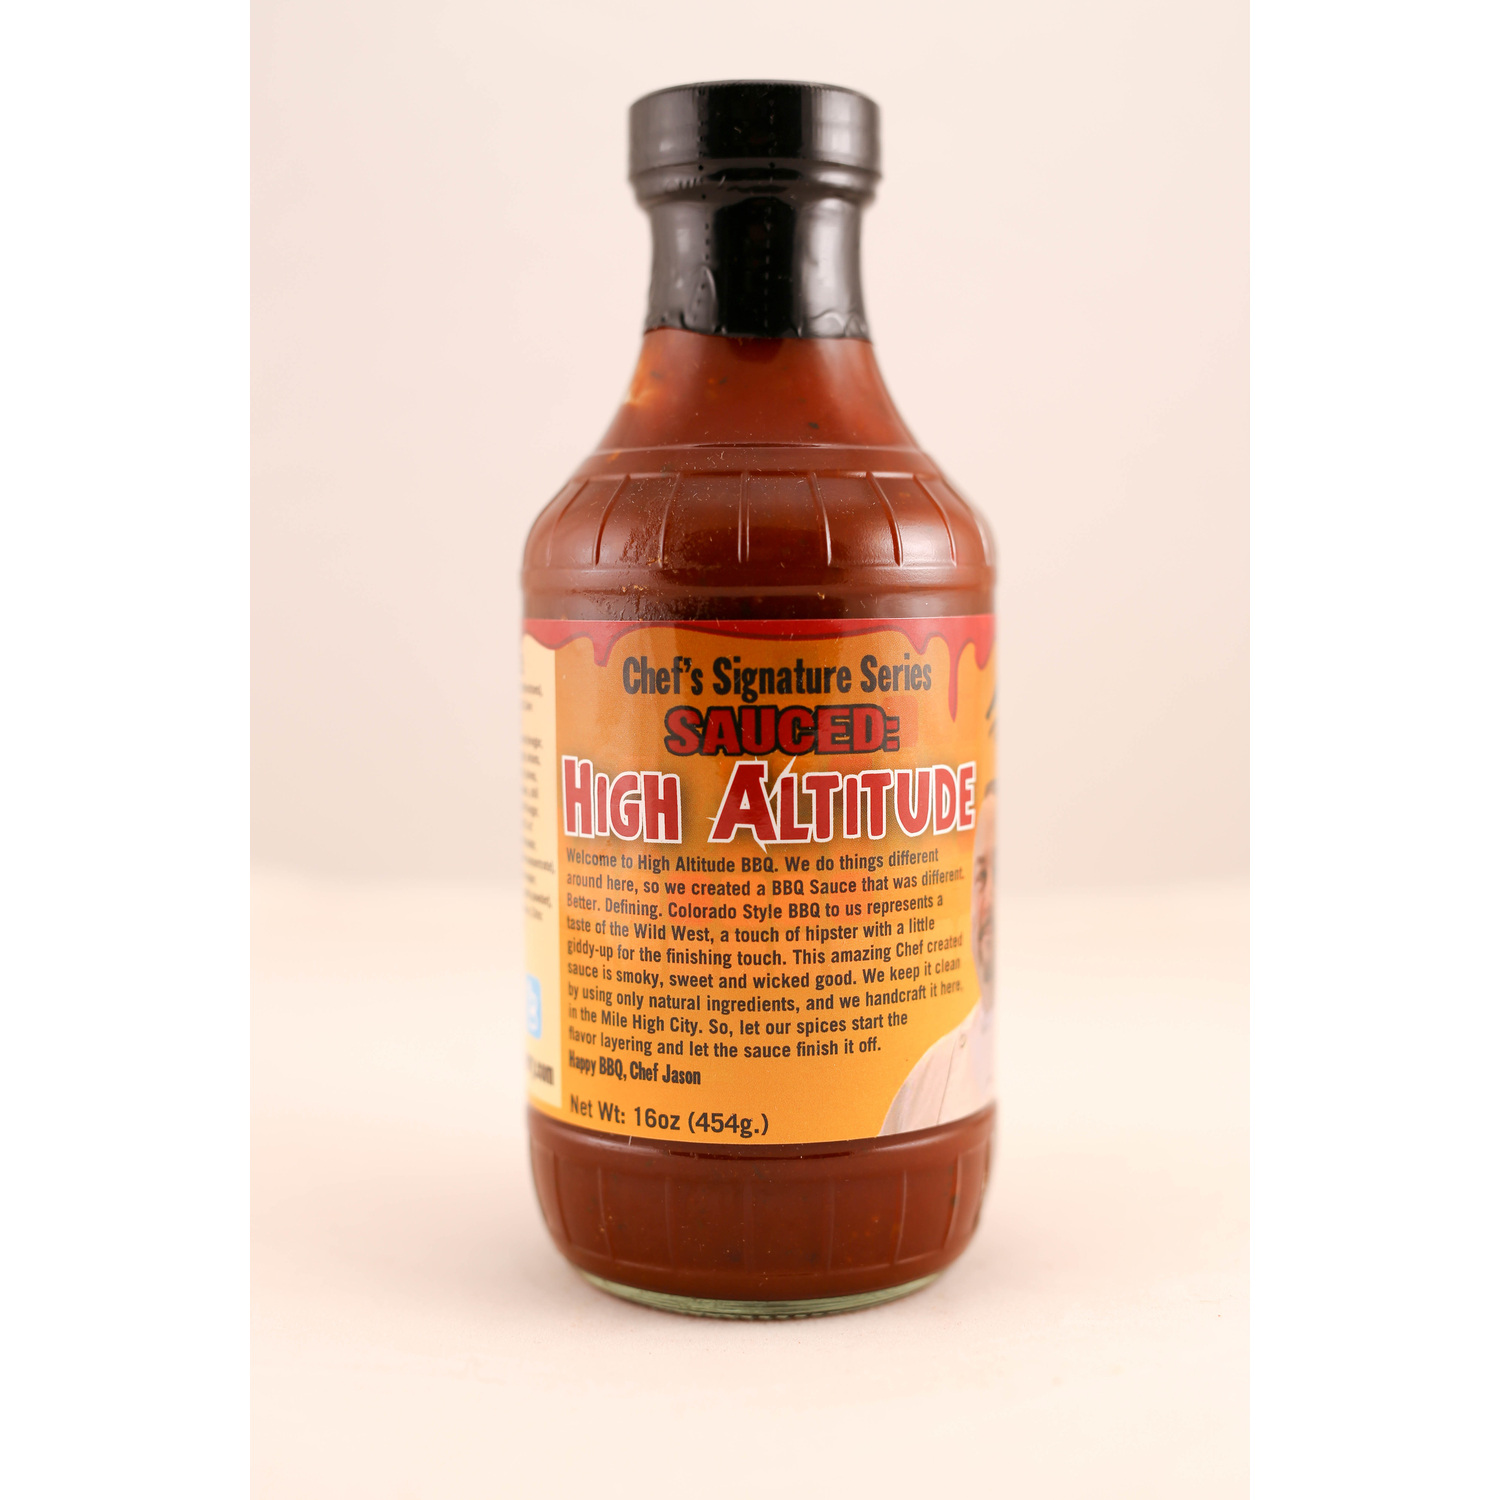 5280 Culinary  BBQ Provisions  High Altitude BBQ Sauce  BBQ Sauce  16 oz.